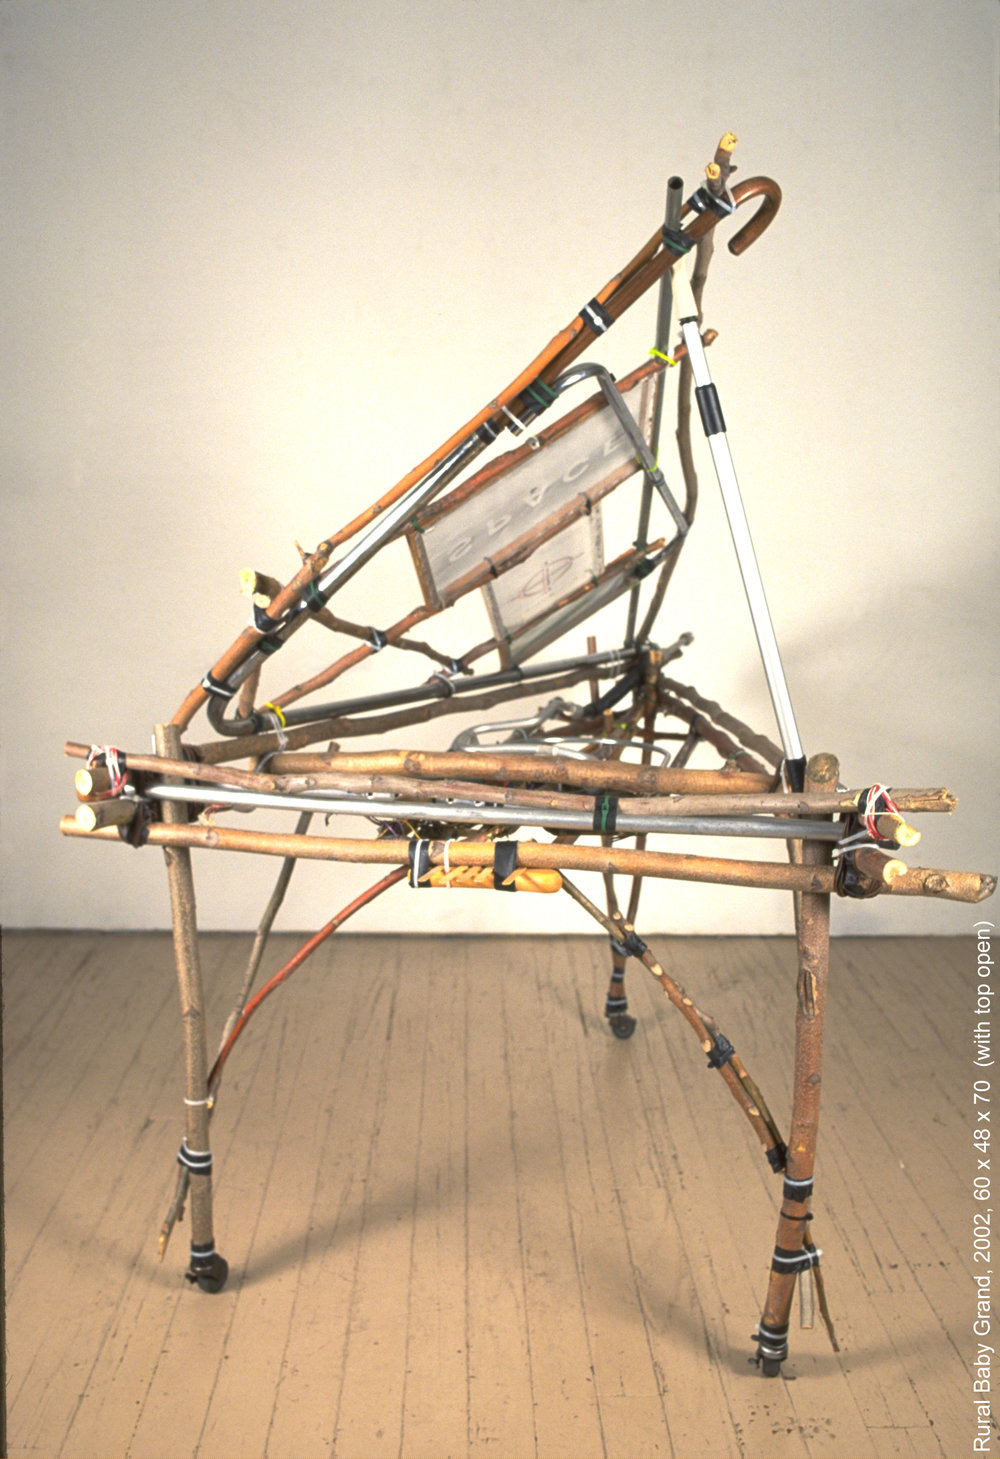 "'Rural Baby Grand' , 2002, 60 x 48 x 70 (with top open). Constructed humbly from branches, twigs, screens, a cane, a crutch, and bits of discarded electronics, in an ""Adirondack"" style, the piano exudes a transparent poetic folk art quality as it mixes ""high"" and ""low"" art forms. The triangular body refers more to the harpsichord than the modern grand with its sweeping wing lid and larger scale. Except for the hint of sound potential provided by a few tongue depressors as keys, the piano is silent."